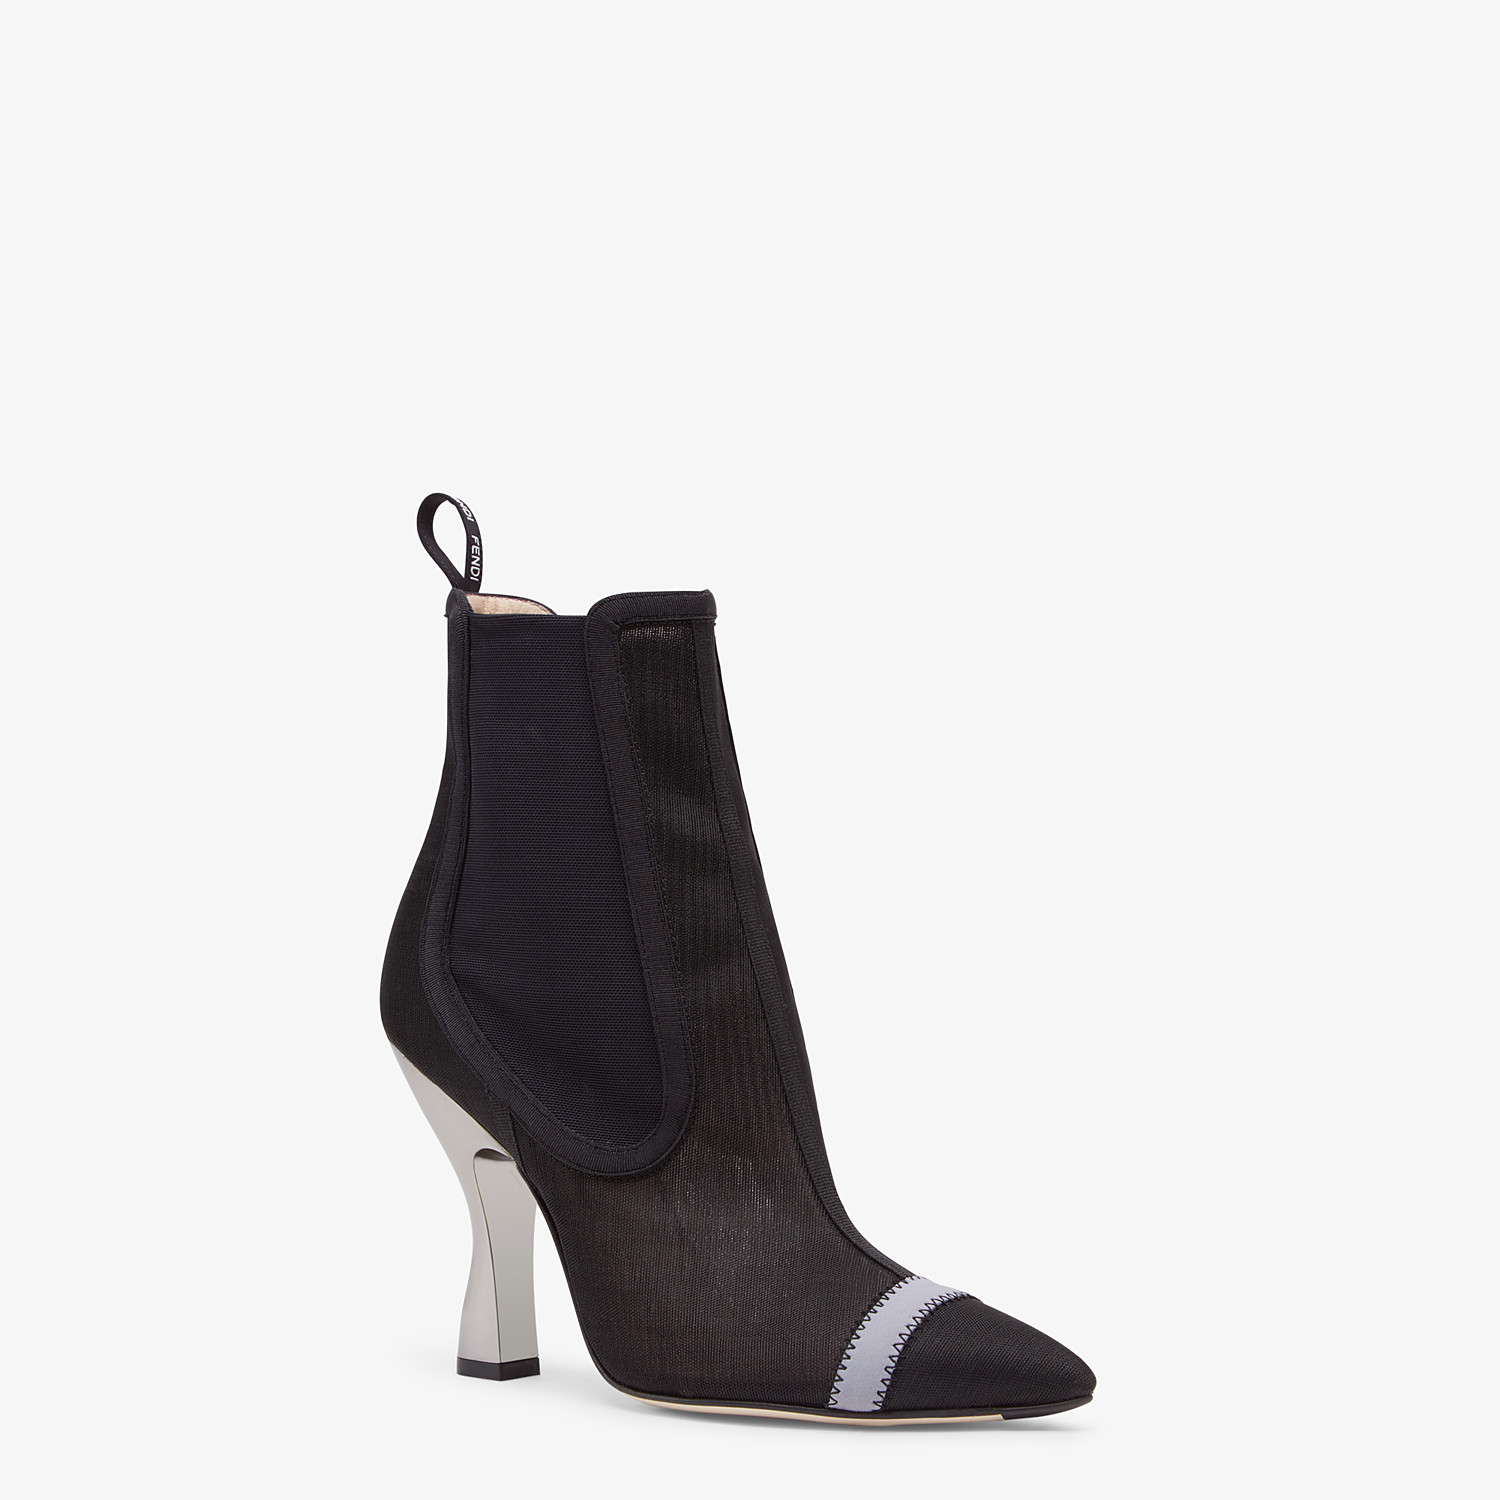 FENDI ANKLE BOOTS - Black mesh booties - view 2 detail